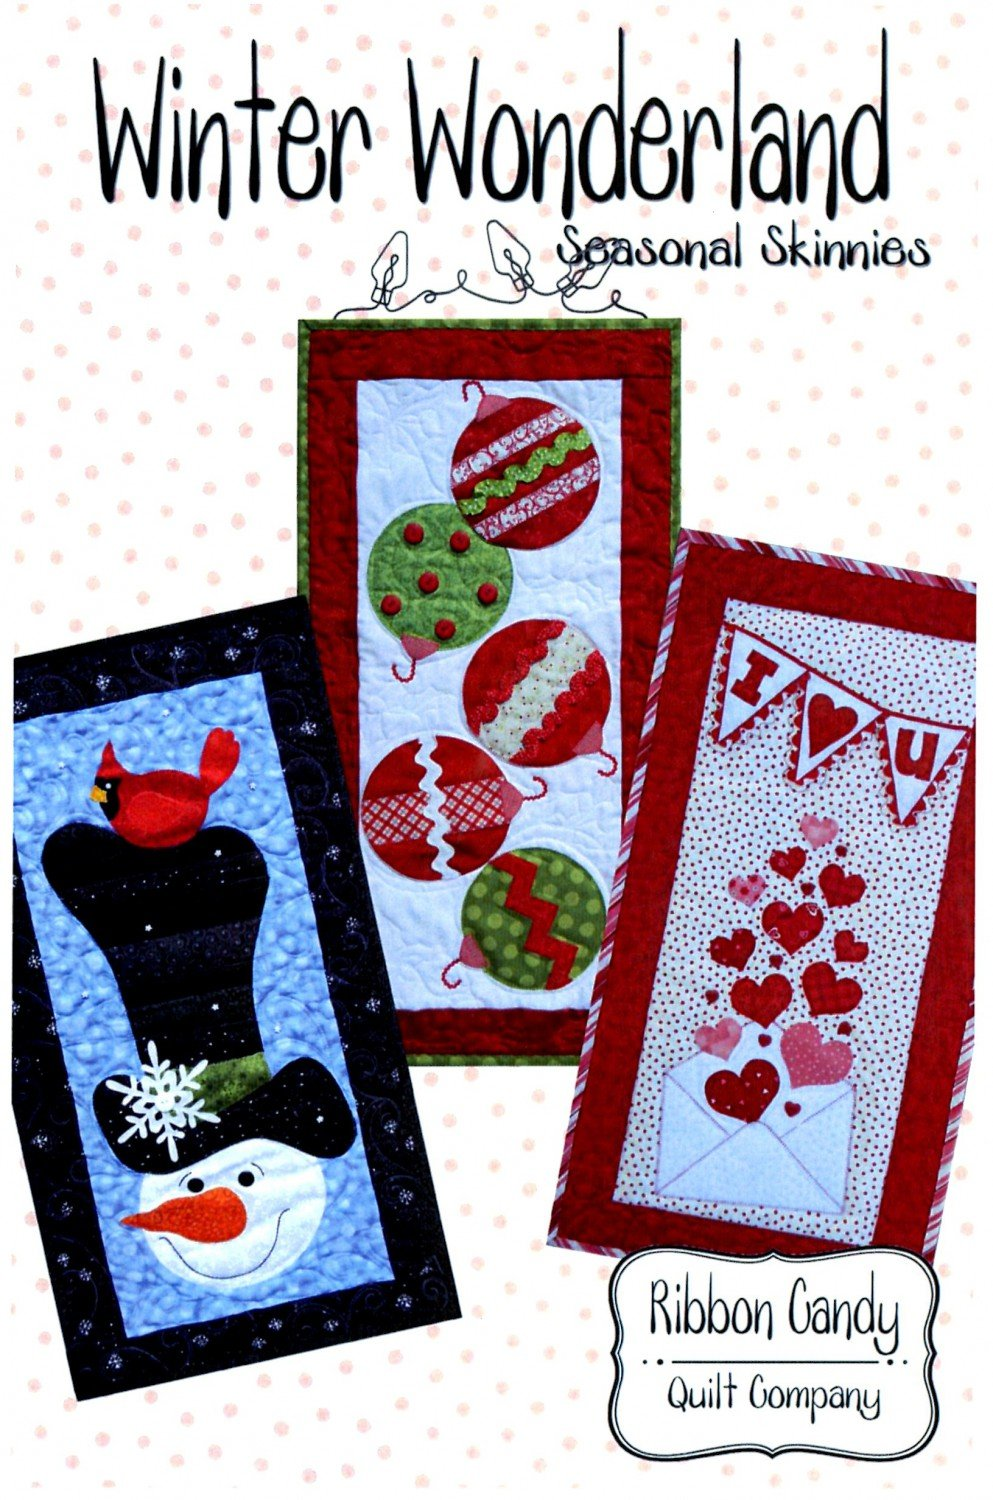 Winter Wonderland  by Ribbon Candy Quilts